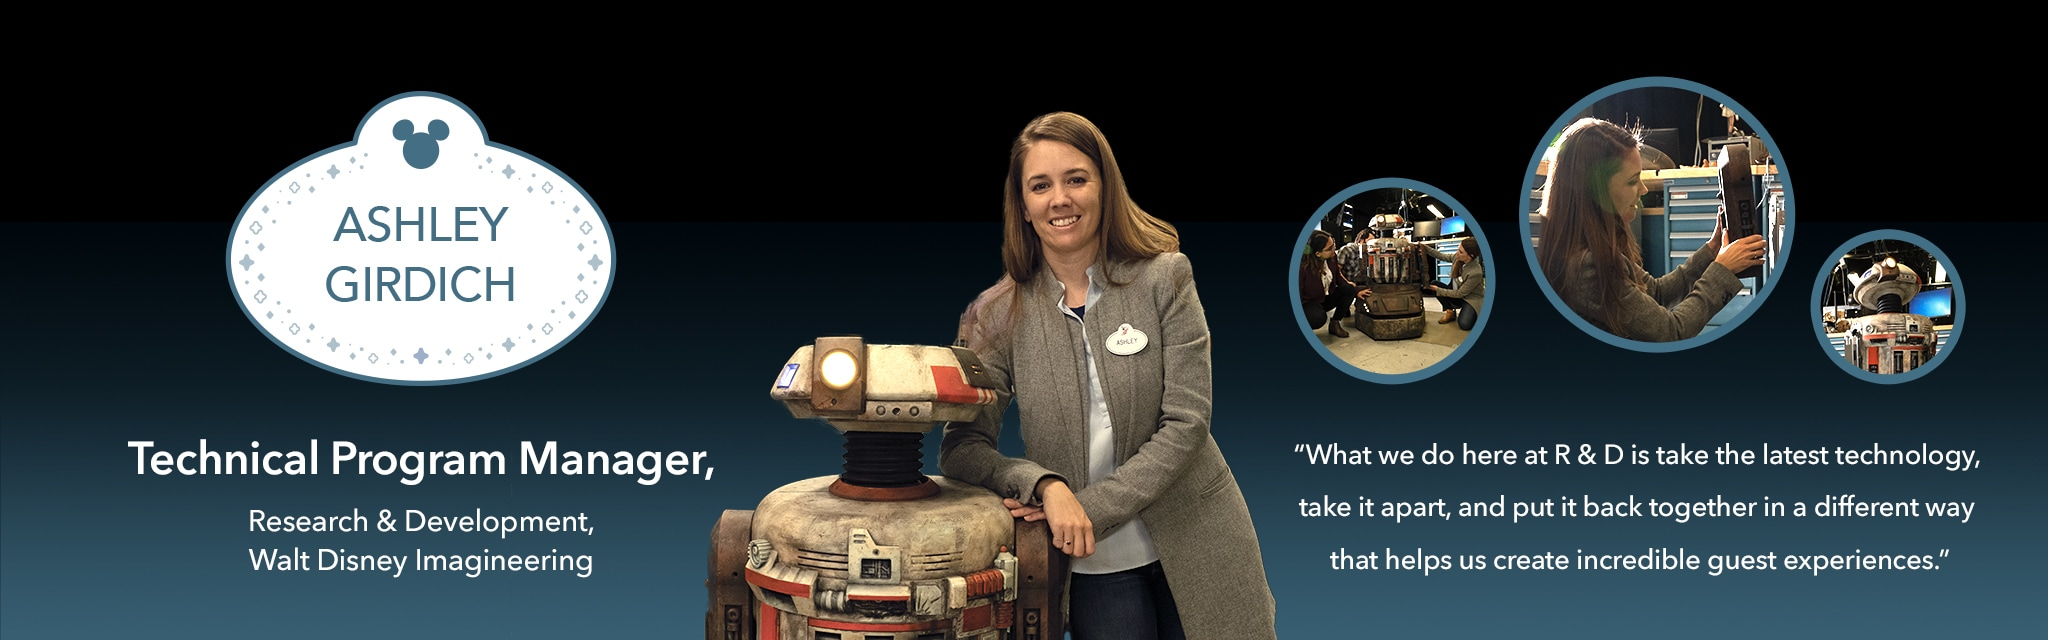 Ashley Girdich, Technical Program Manager, Research & Development, Walt Disney Imagineering: What we do here at R & D is take the latest technology, take it apart, and put it back together in a different way that helps us create incredible guest experiences.